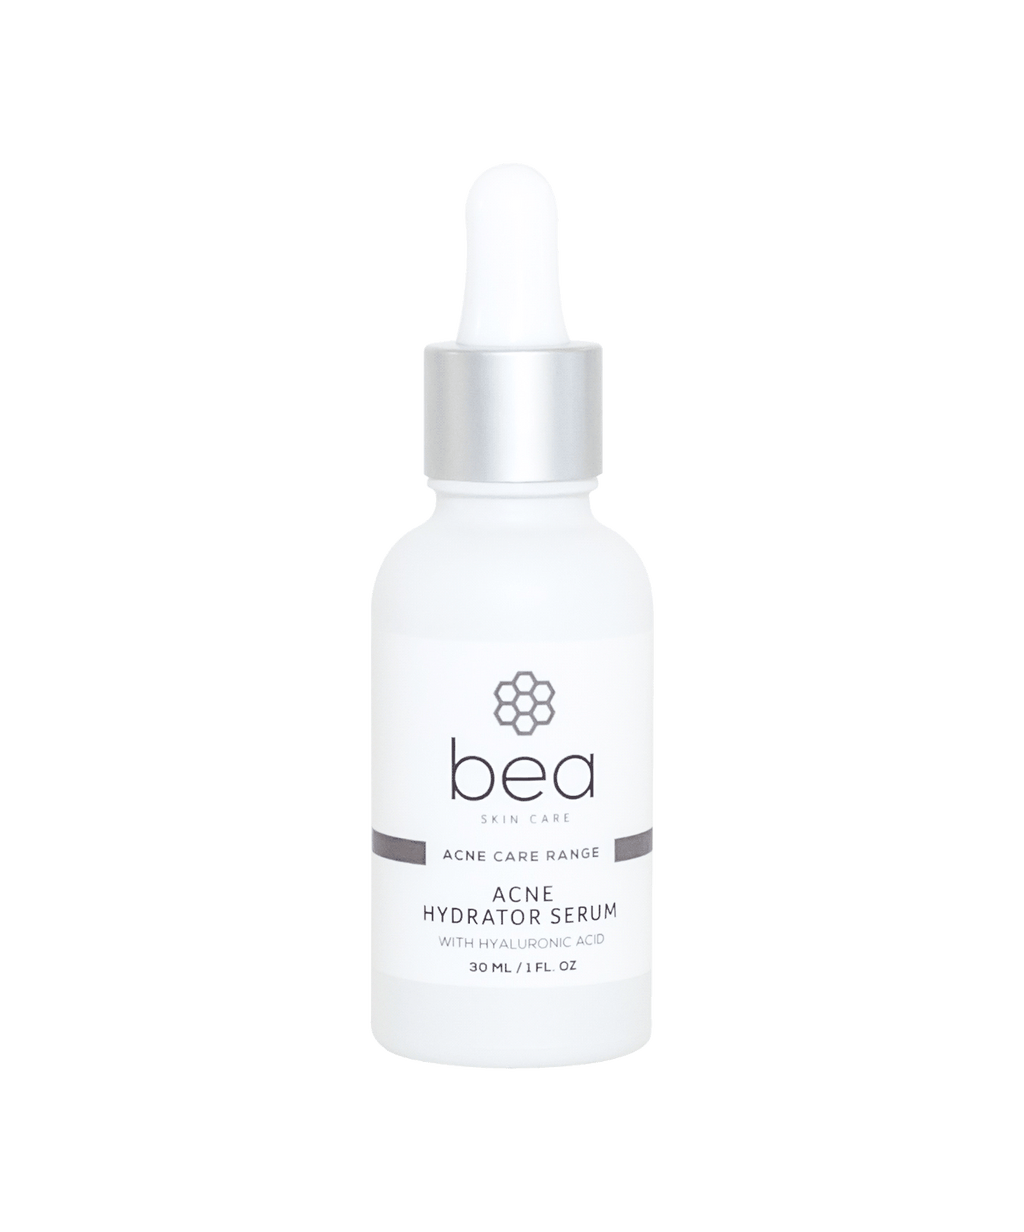 Acne Hydrator Serum - 30 ml Face Serum bea Skin Care